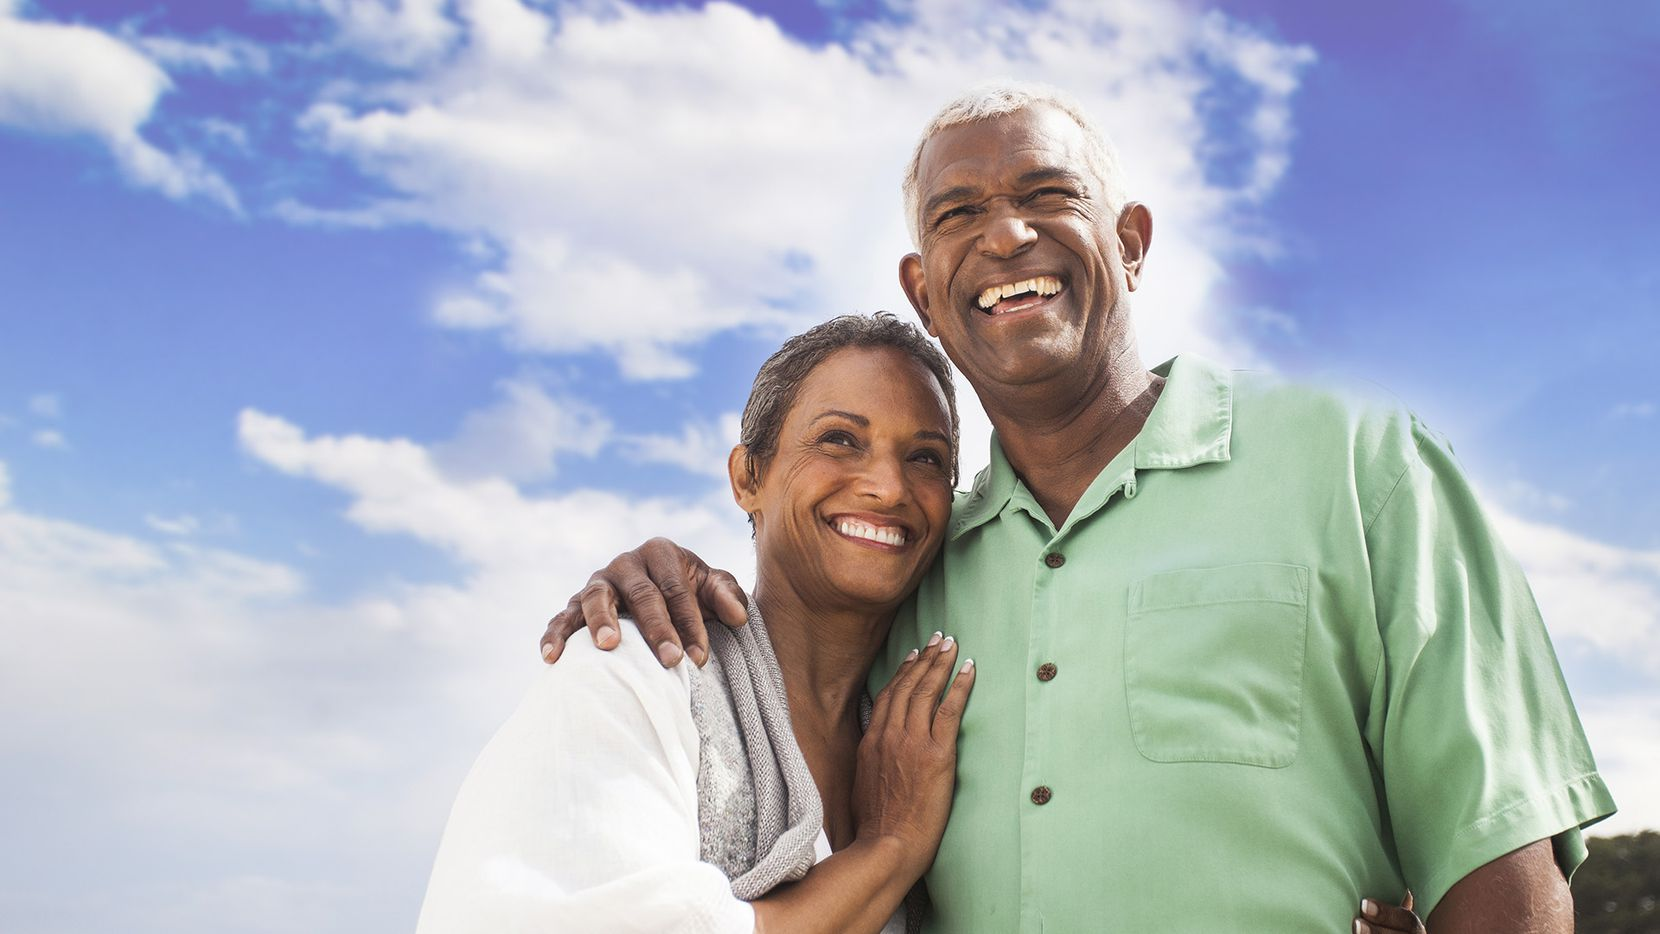 Retirement benefits were intended to replace earnings a person loses when he or she retires.